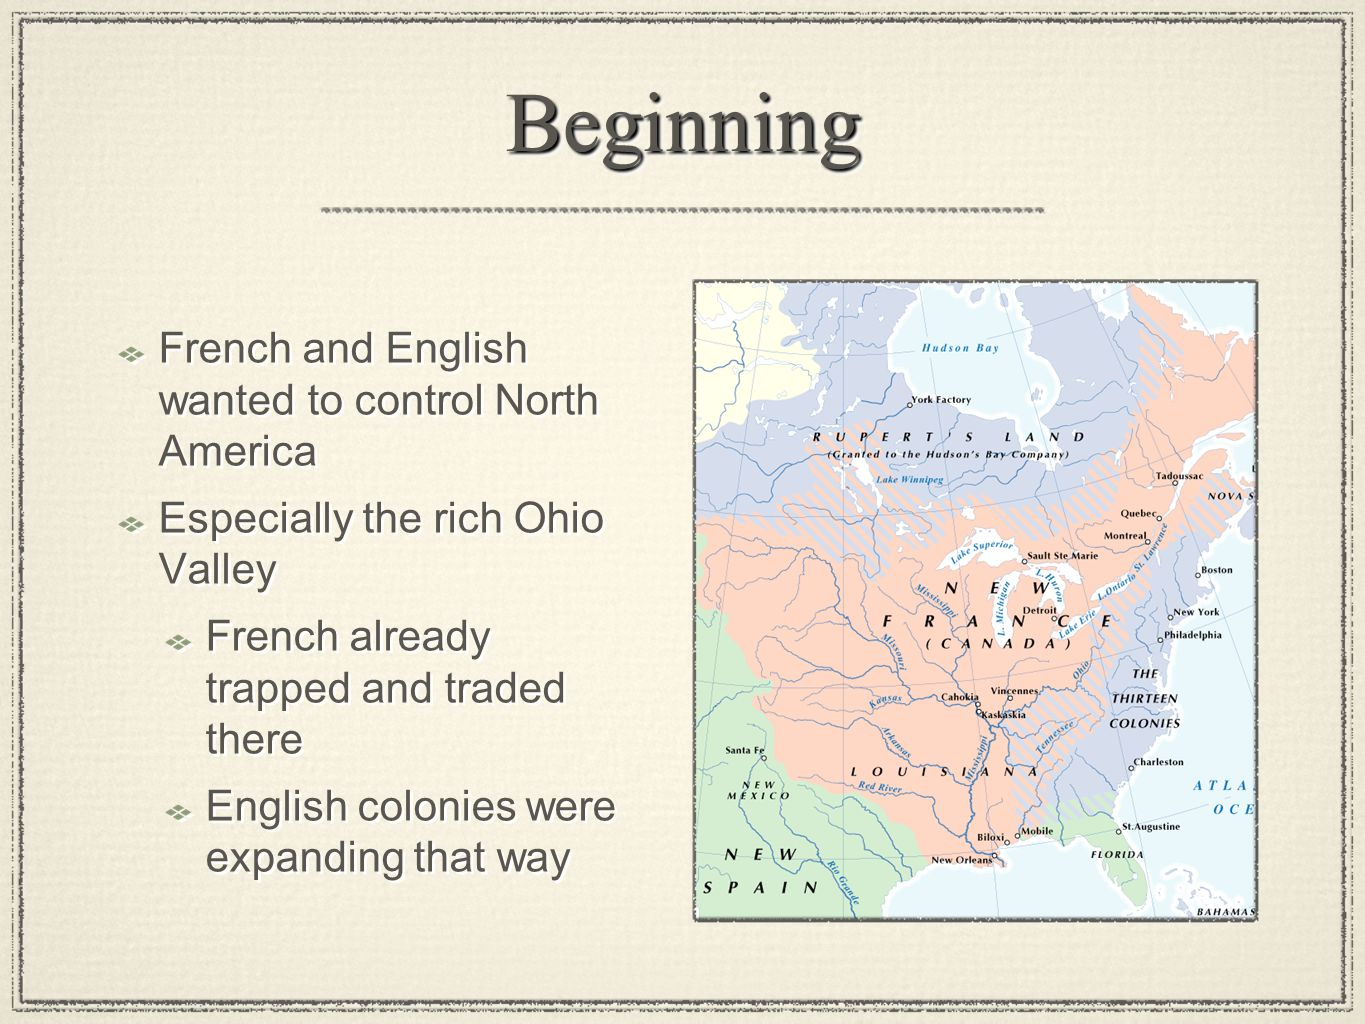 Beginning French and English wanted to control North America